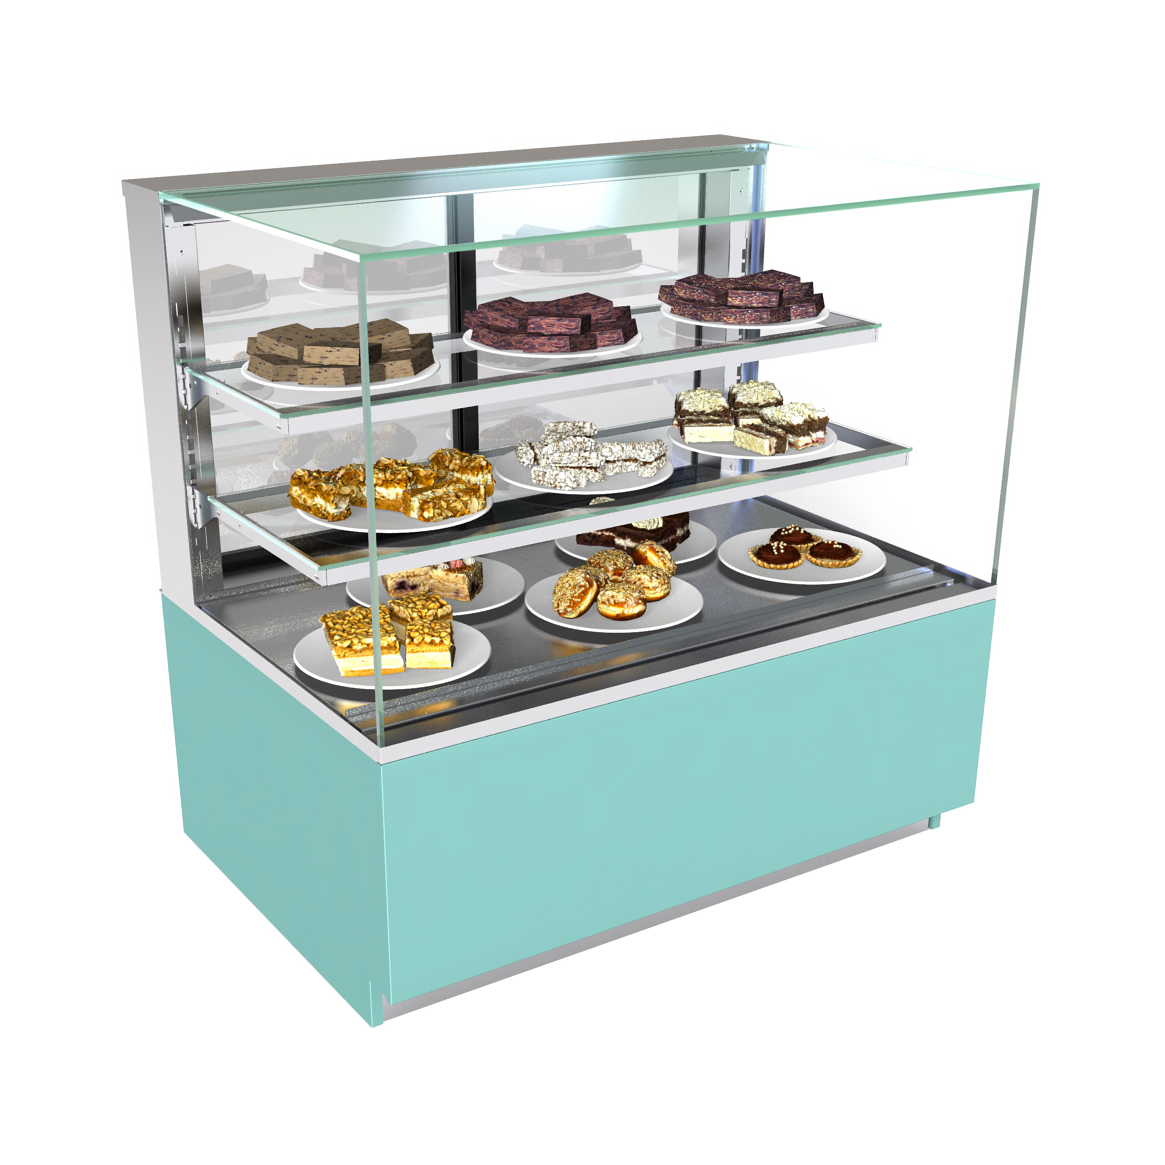 Structural Concepts NR4847DSV display case, non-refrigerated bakery